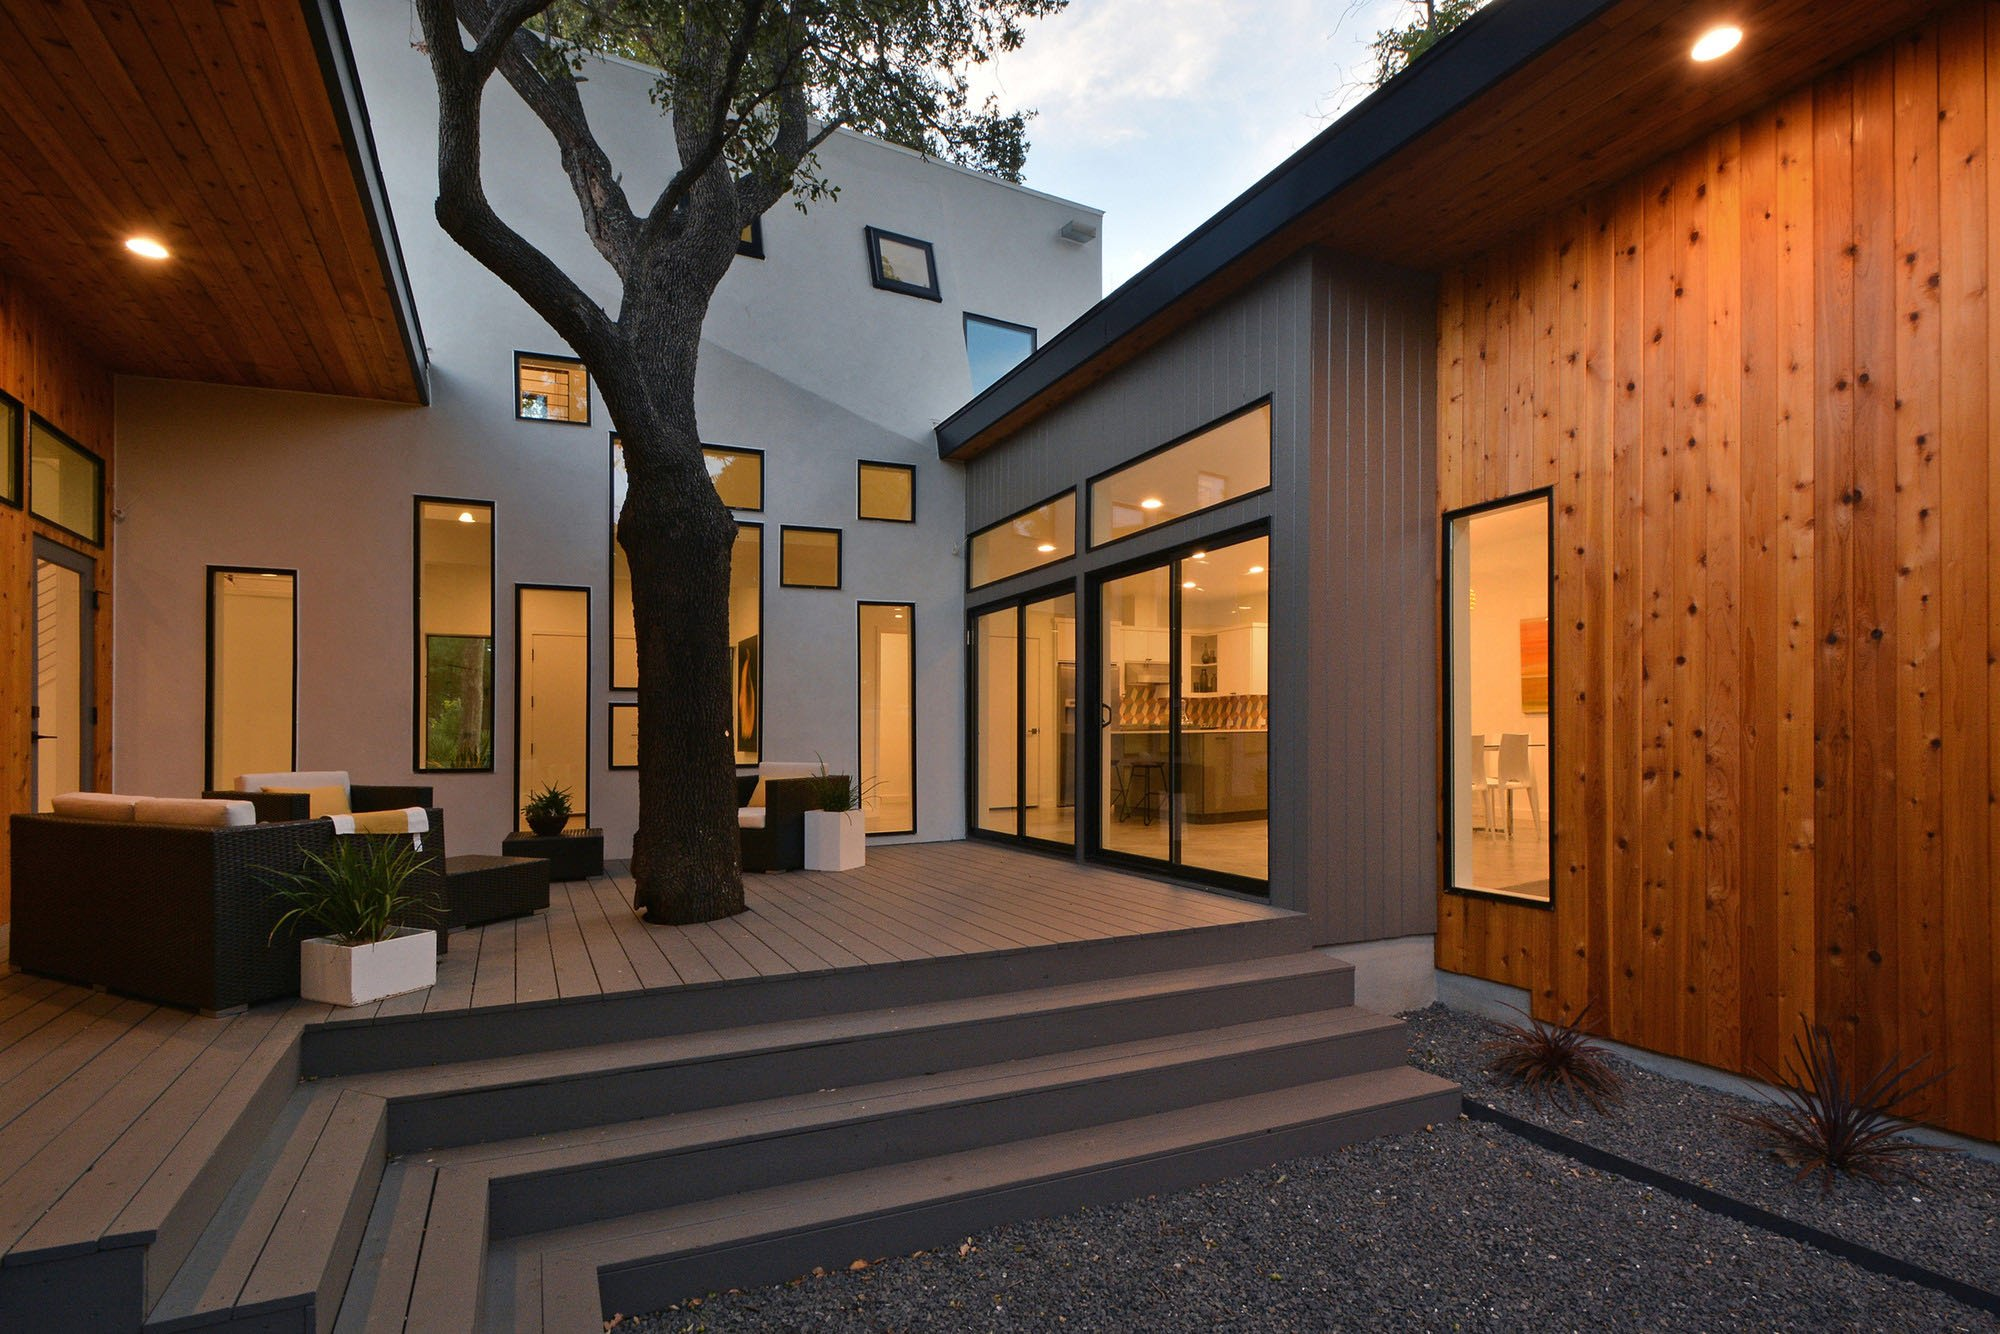 Austin Modern Tree House - Matt Fajkus Architecture - patio